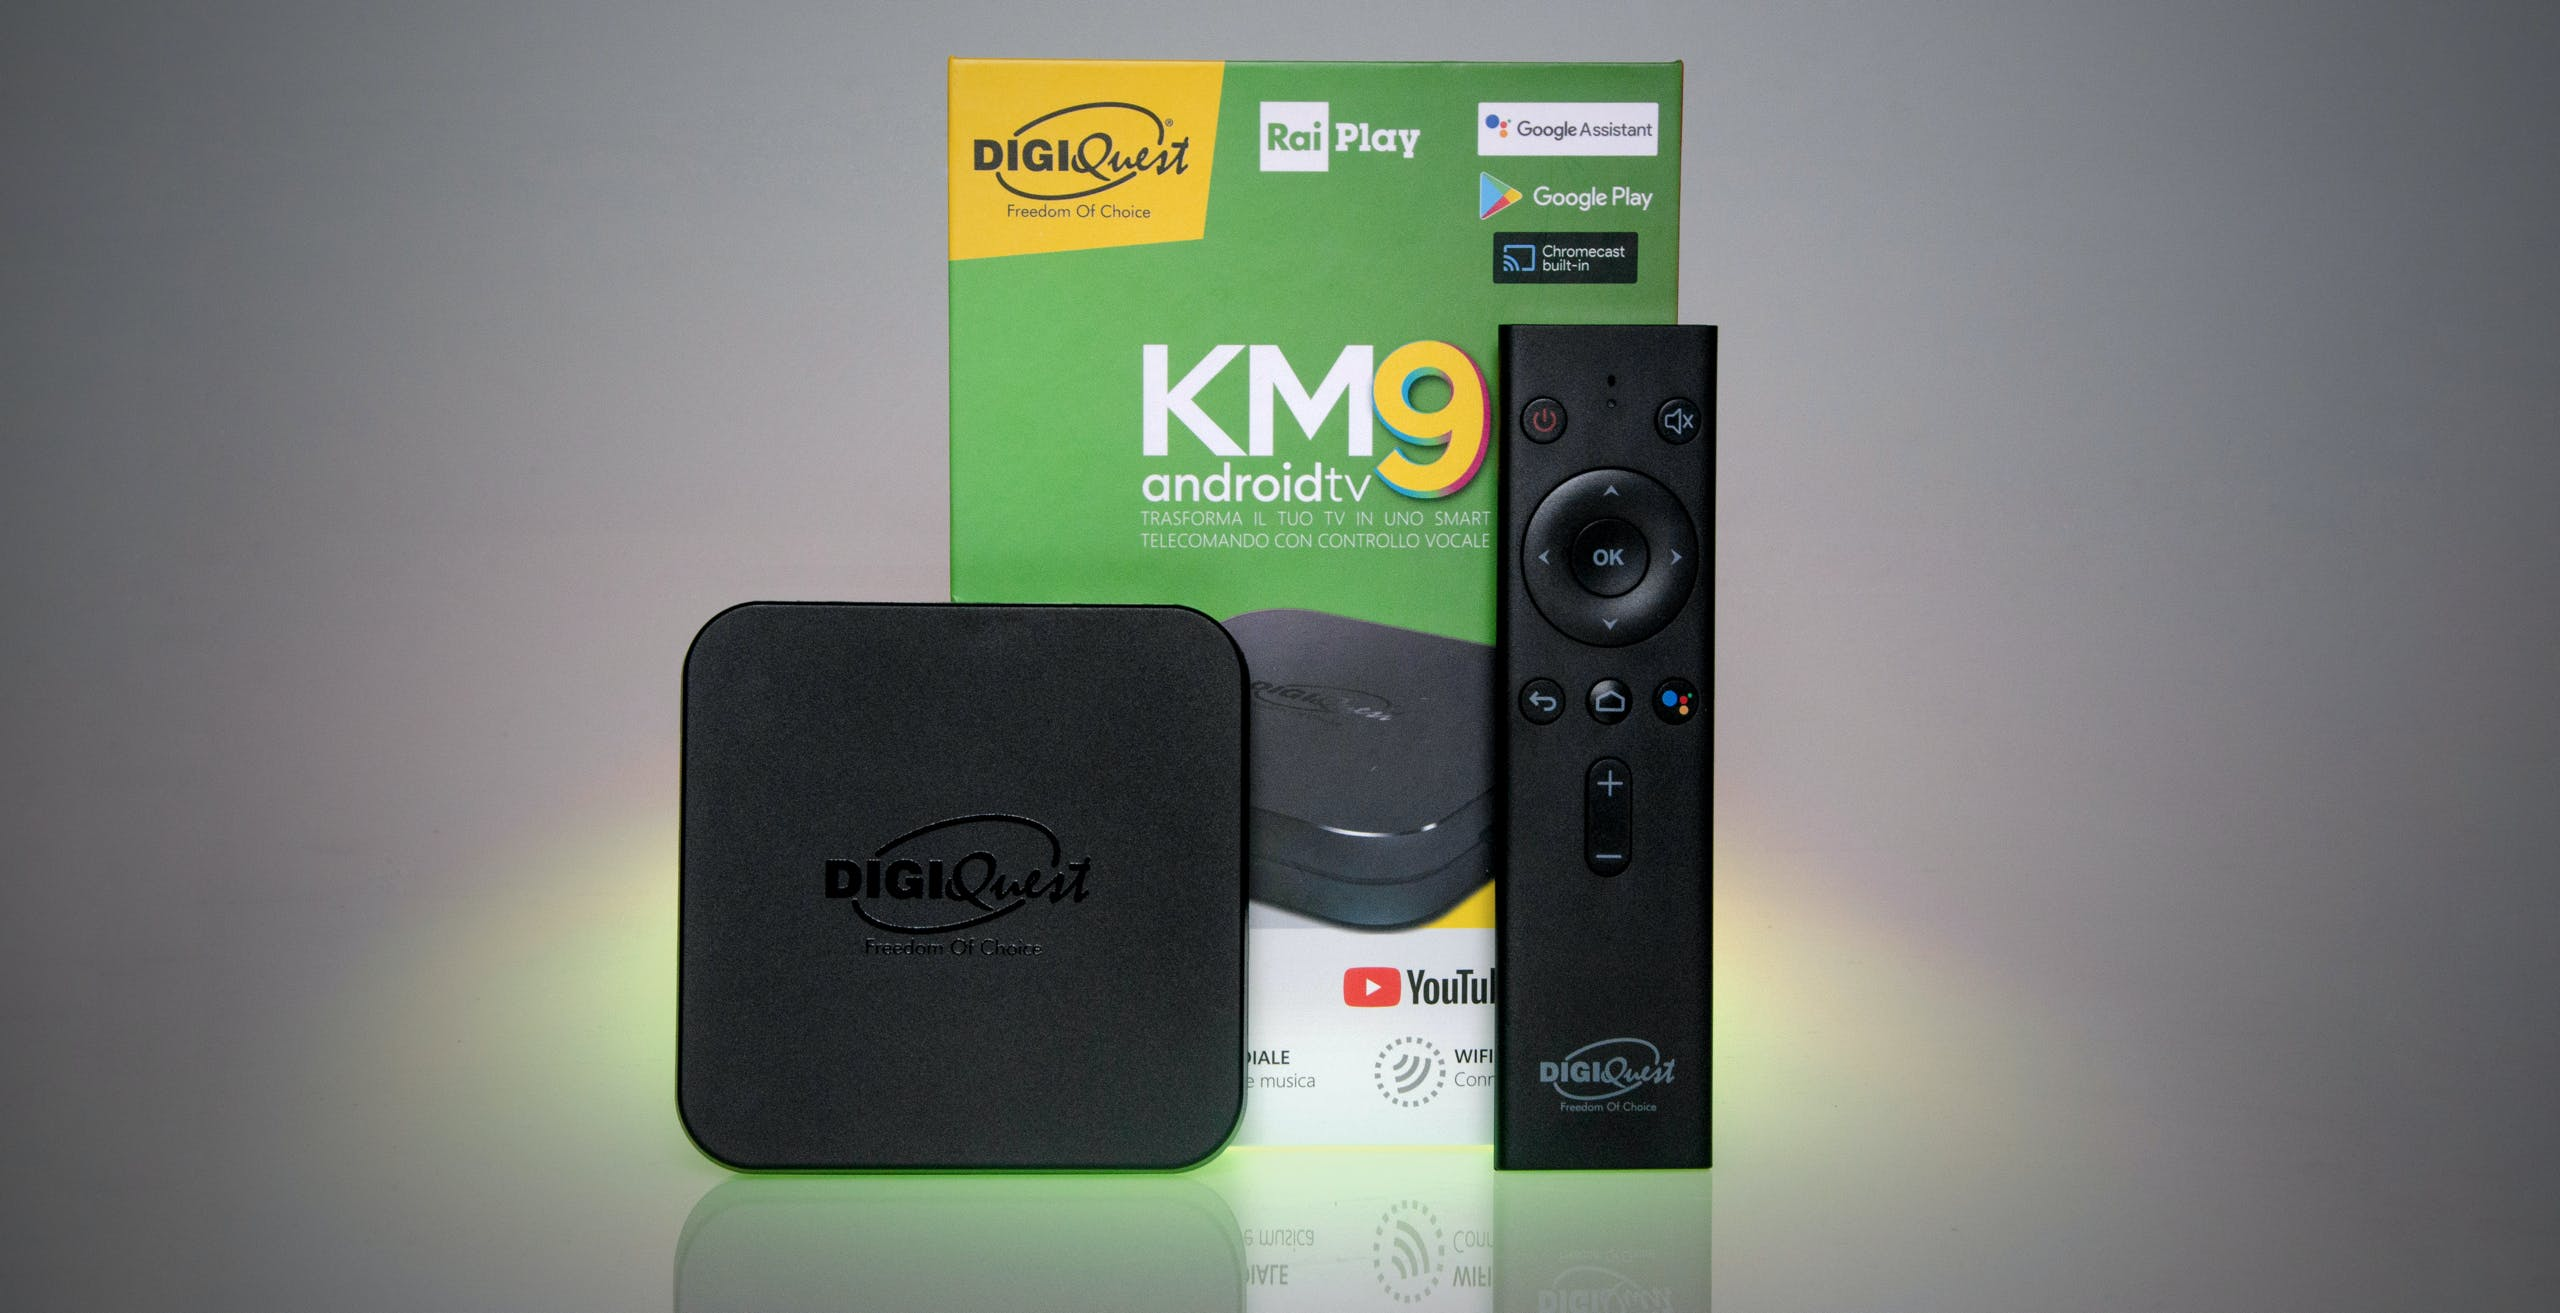 Test Digiquest KM9: un box Android TV che guarda al passato anziché al futuro